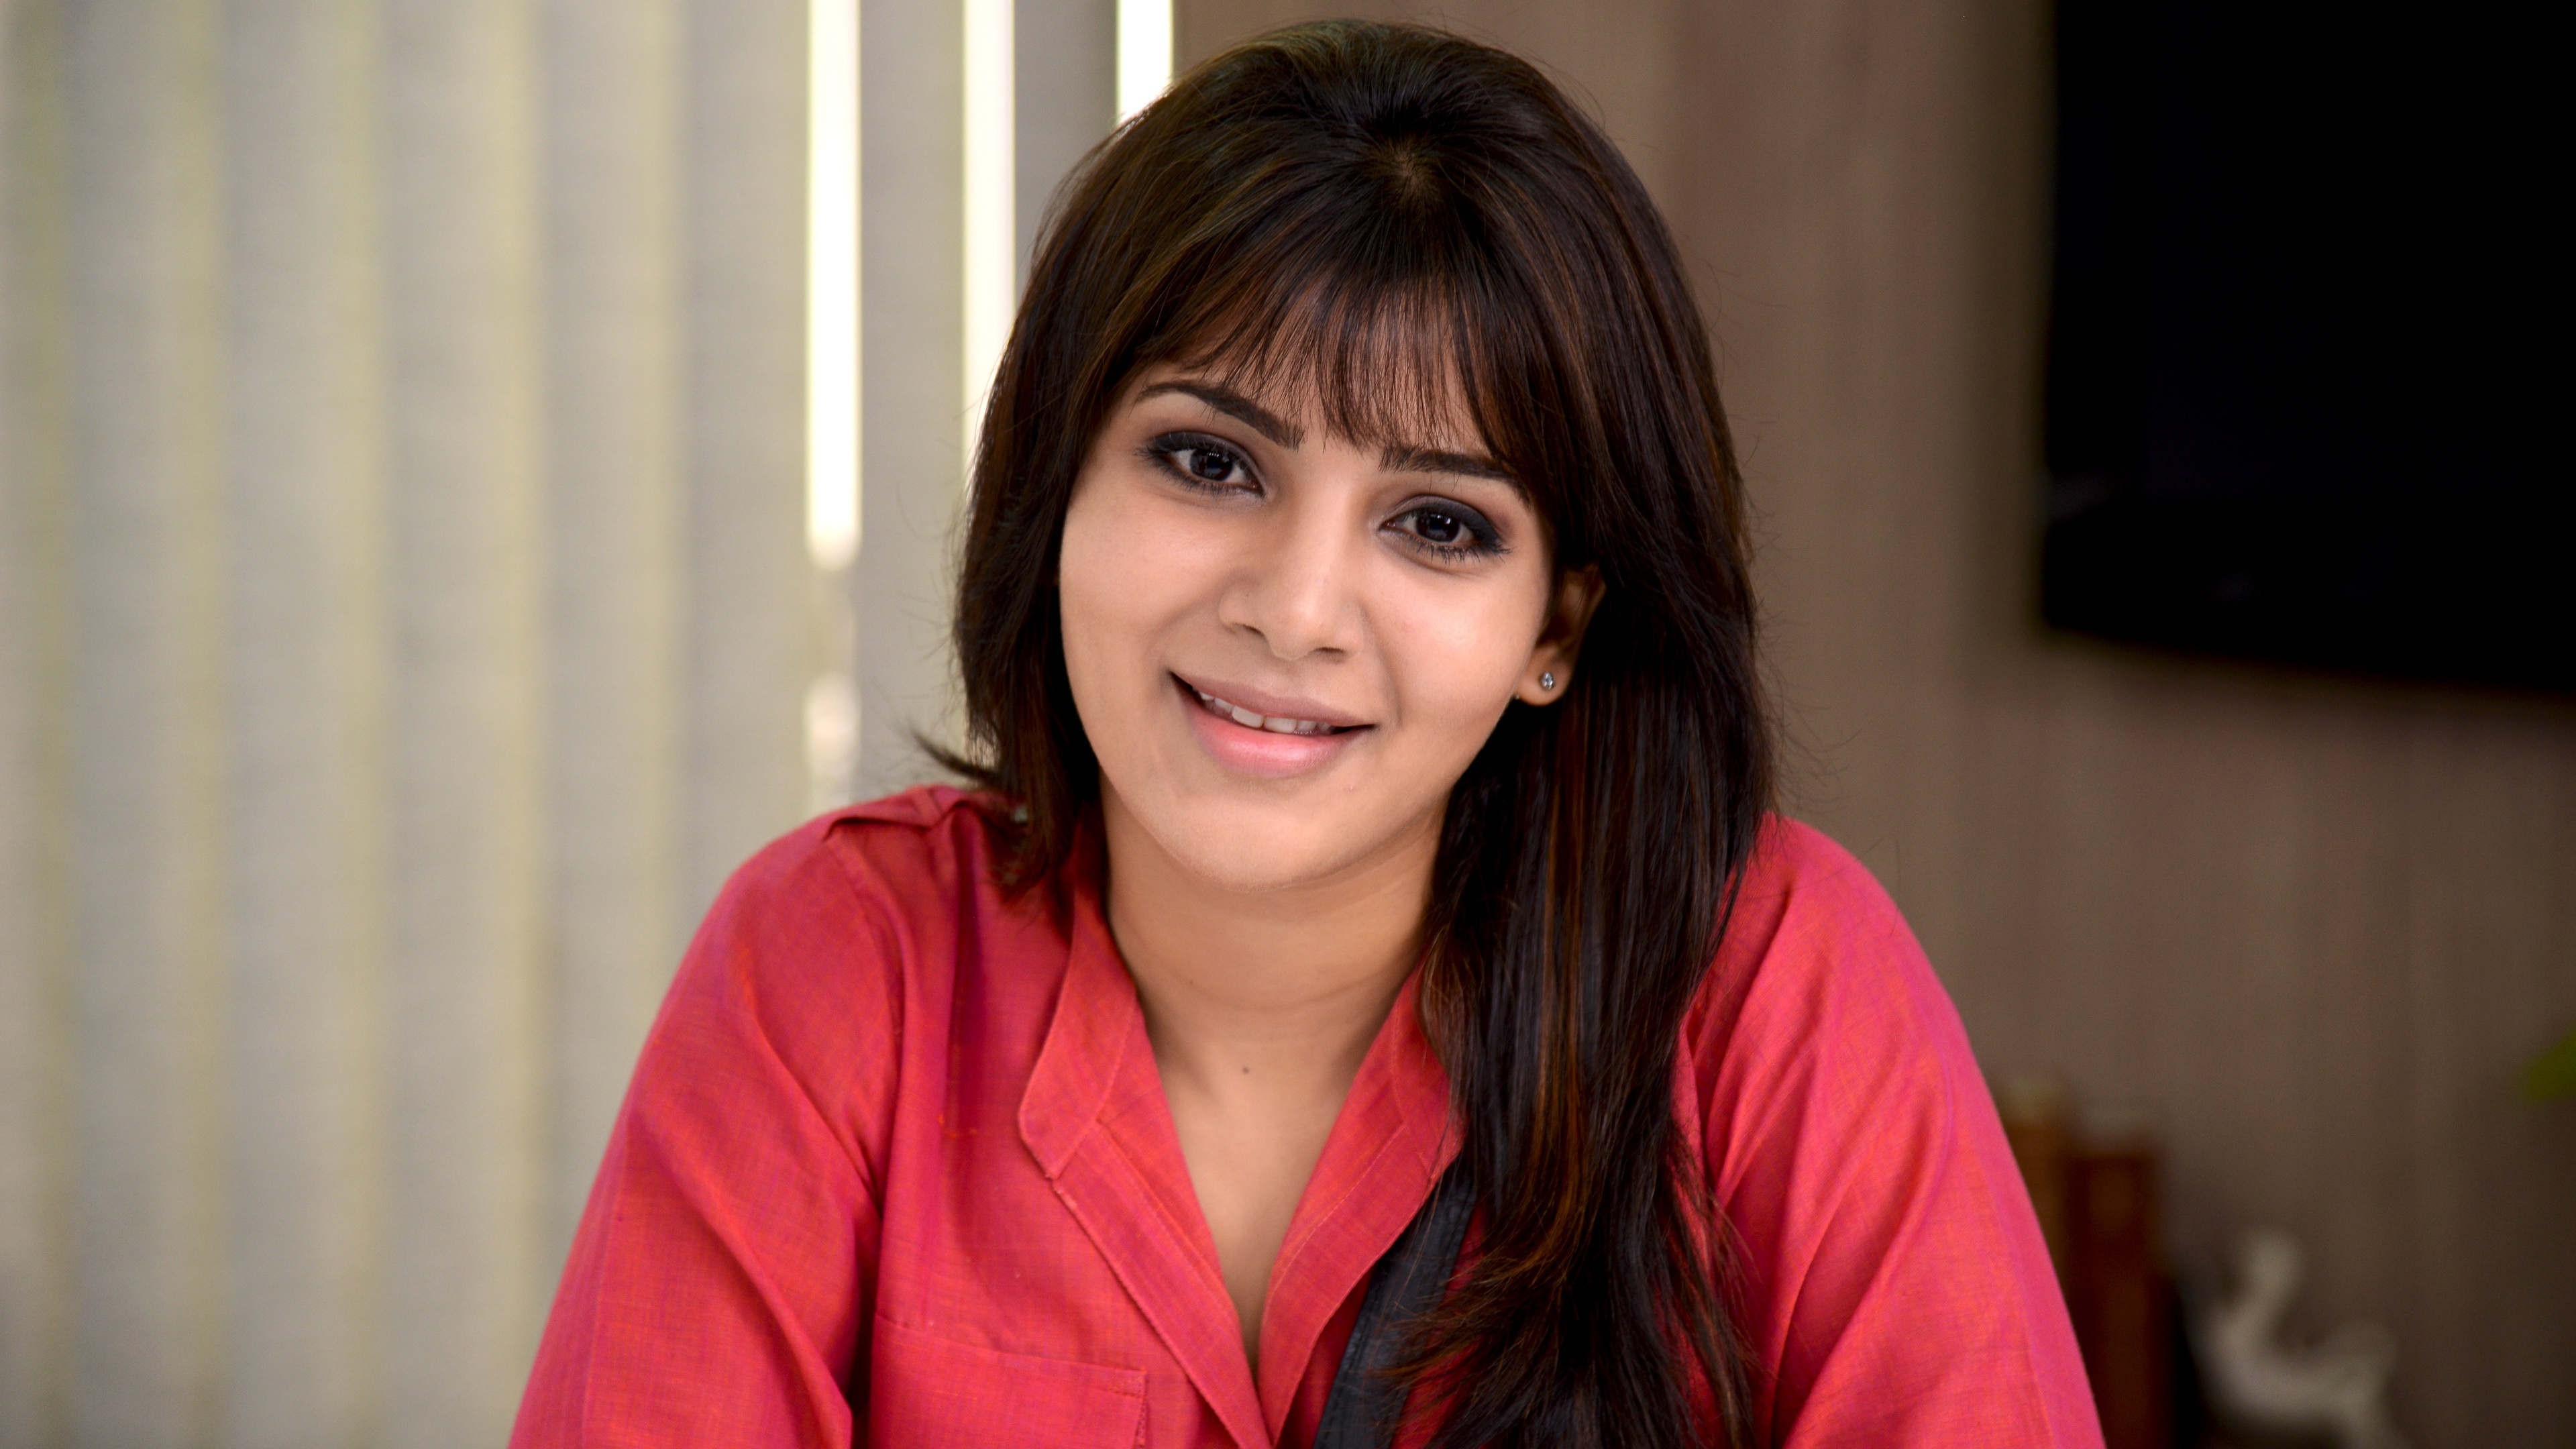 samantha ruth prabhu 4k ultra hd wallpaper and background image